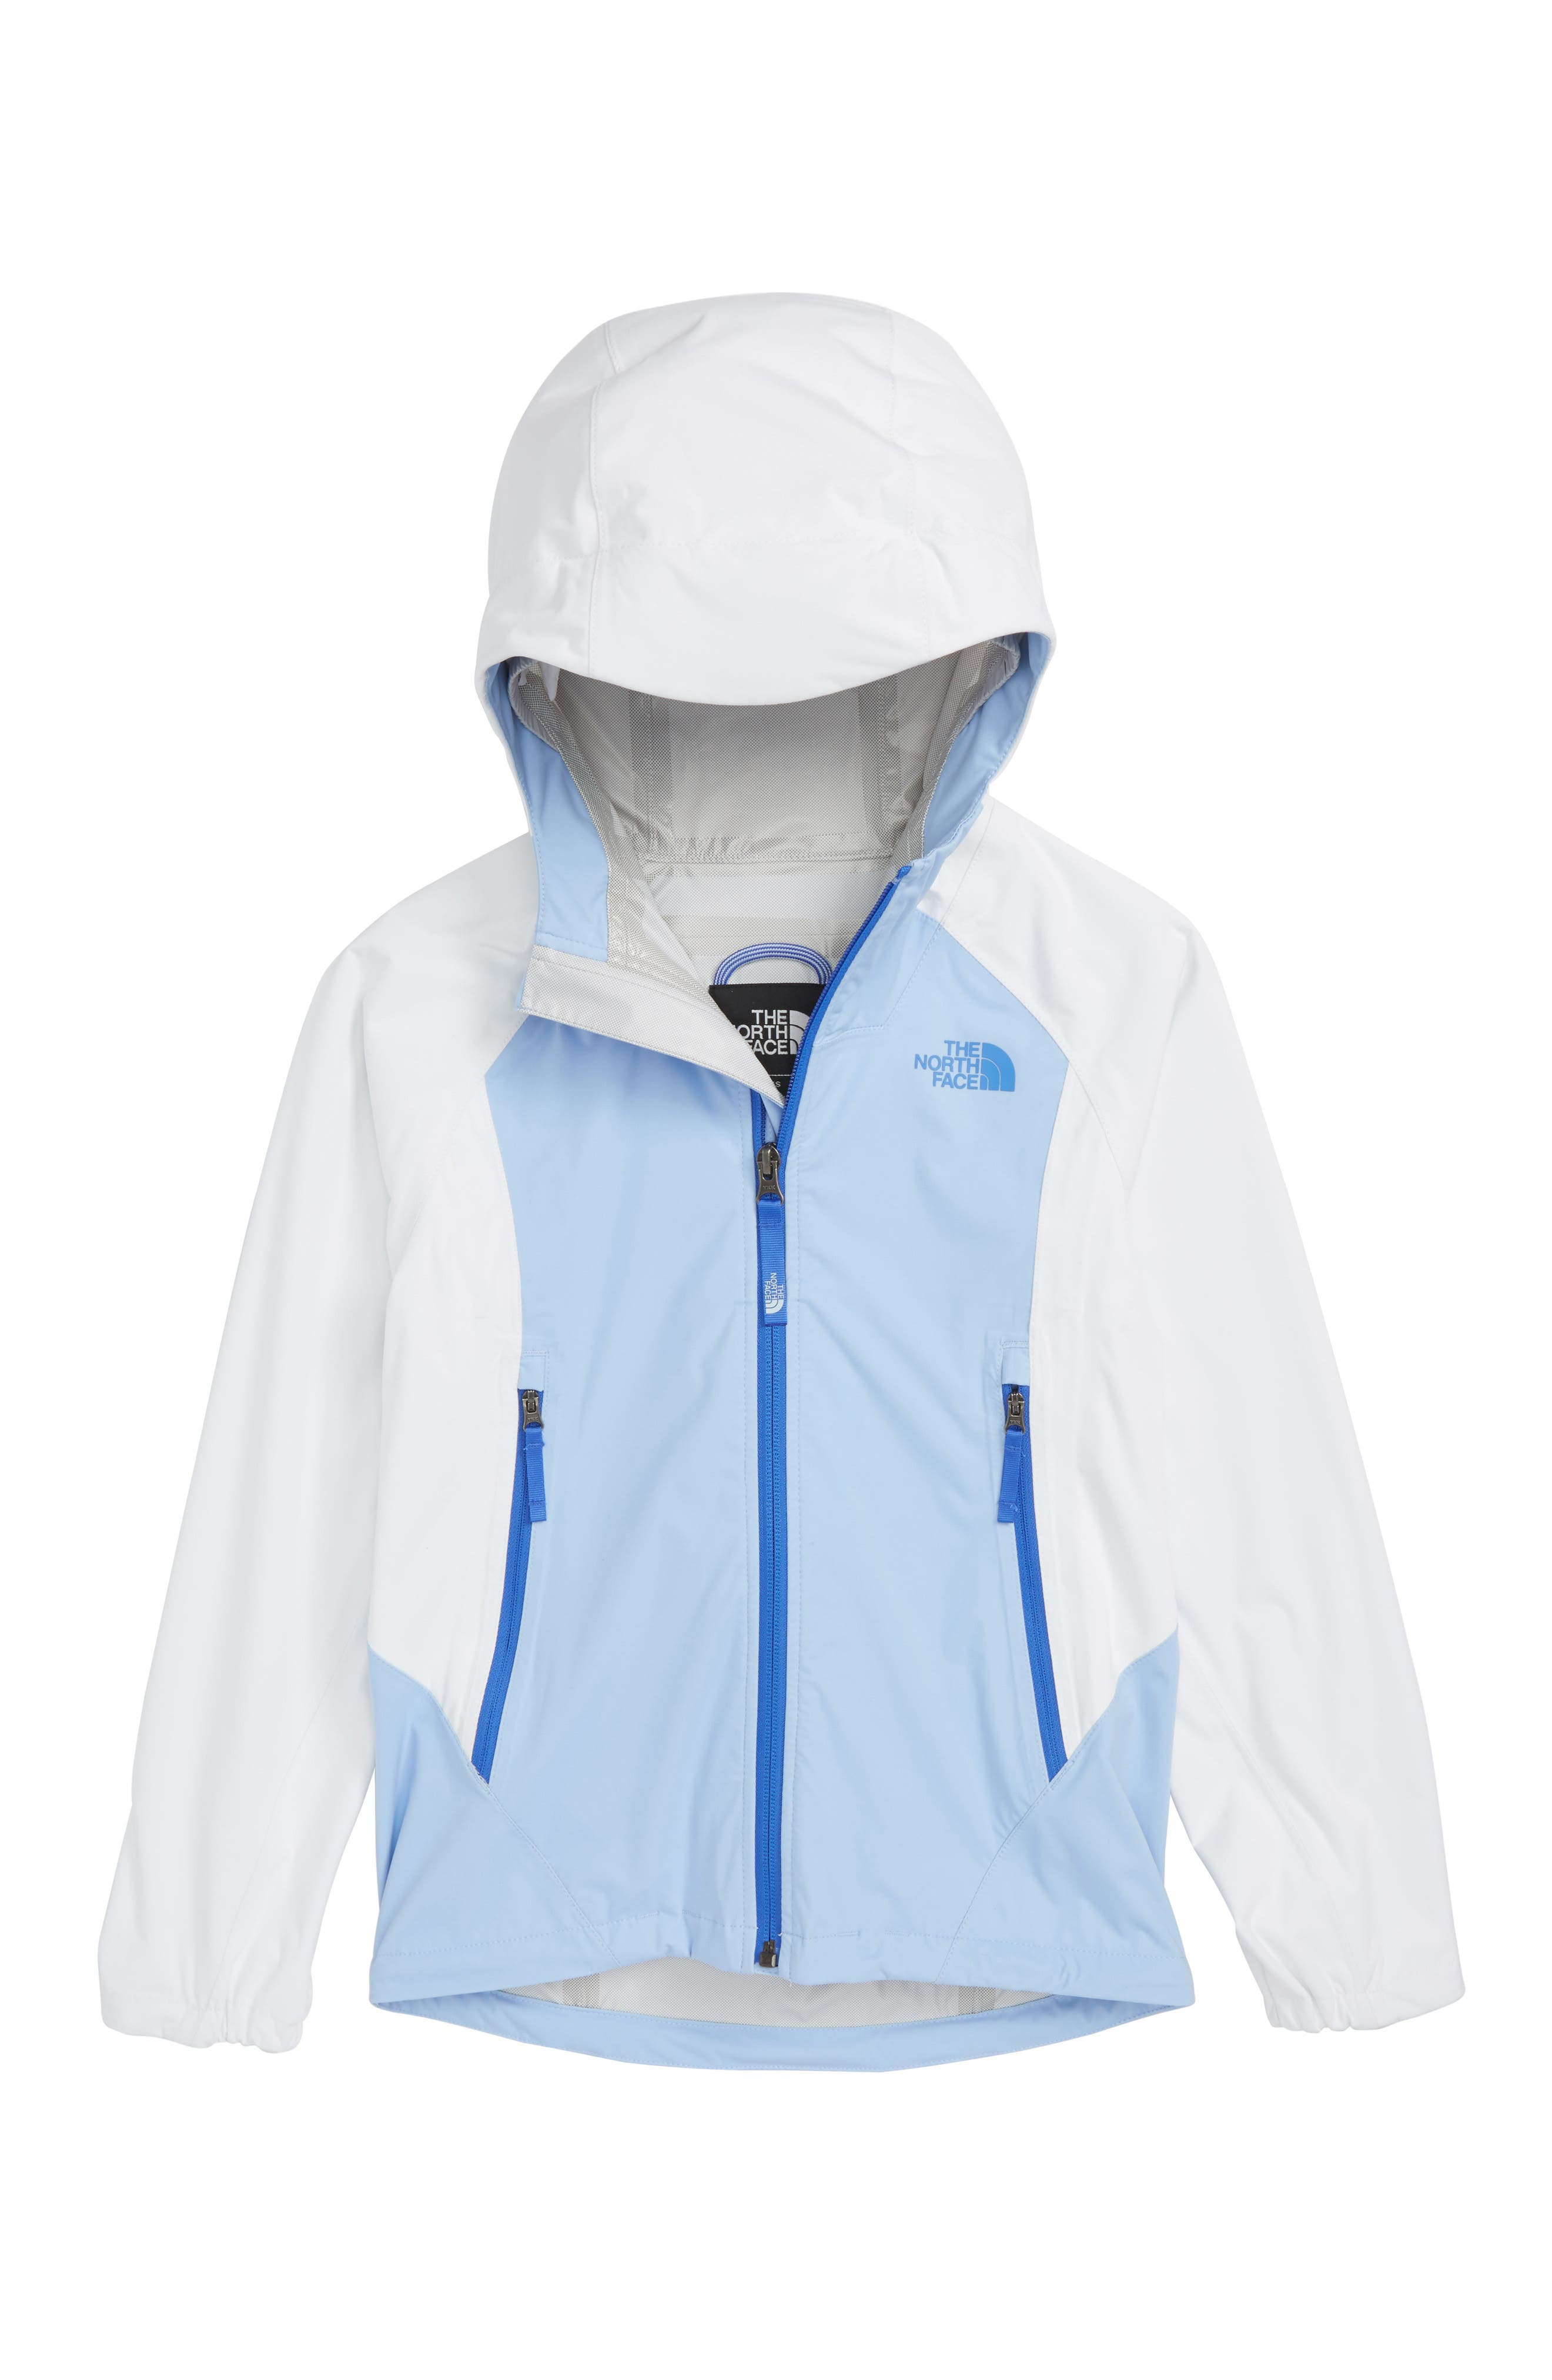 Allproof Stretch Hooded Rain Jacket,                         Main,                         color, White